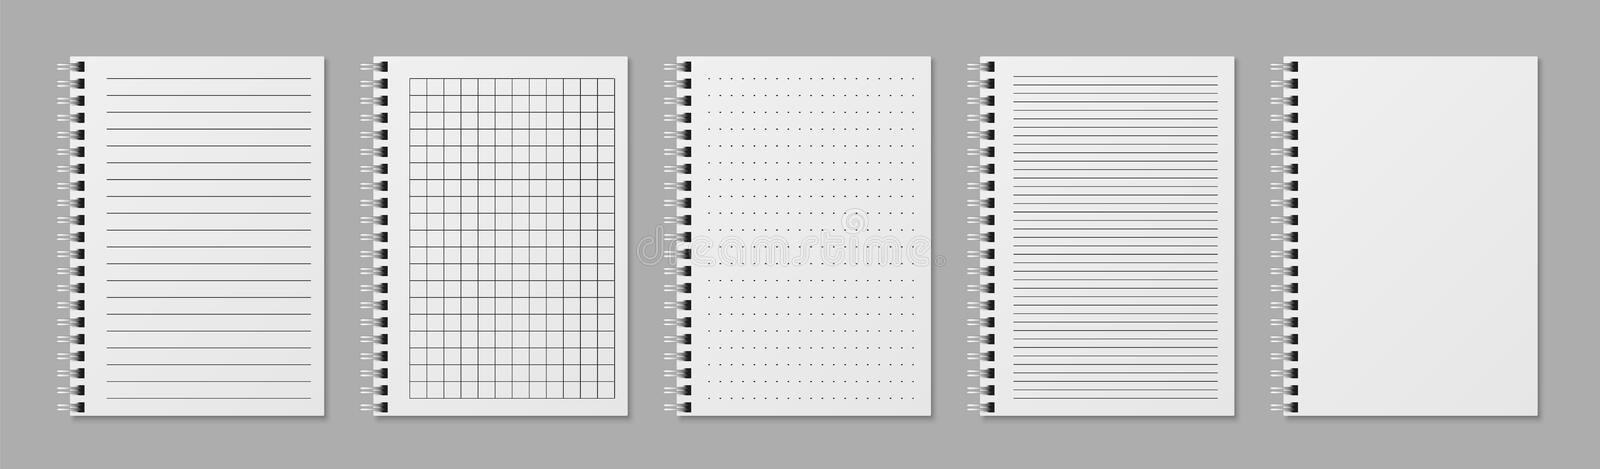 Realistic line notobooks. Blank padded sketchbook with dots and lines for writing vector templates stock illustration